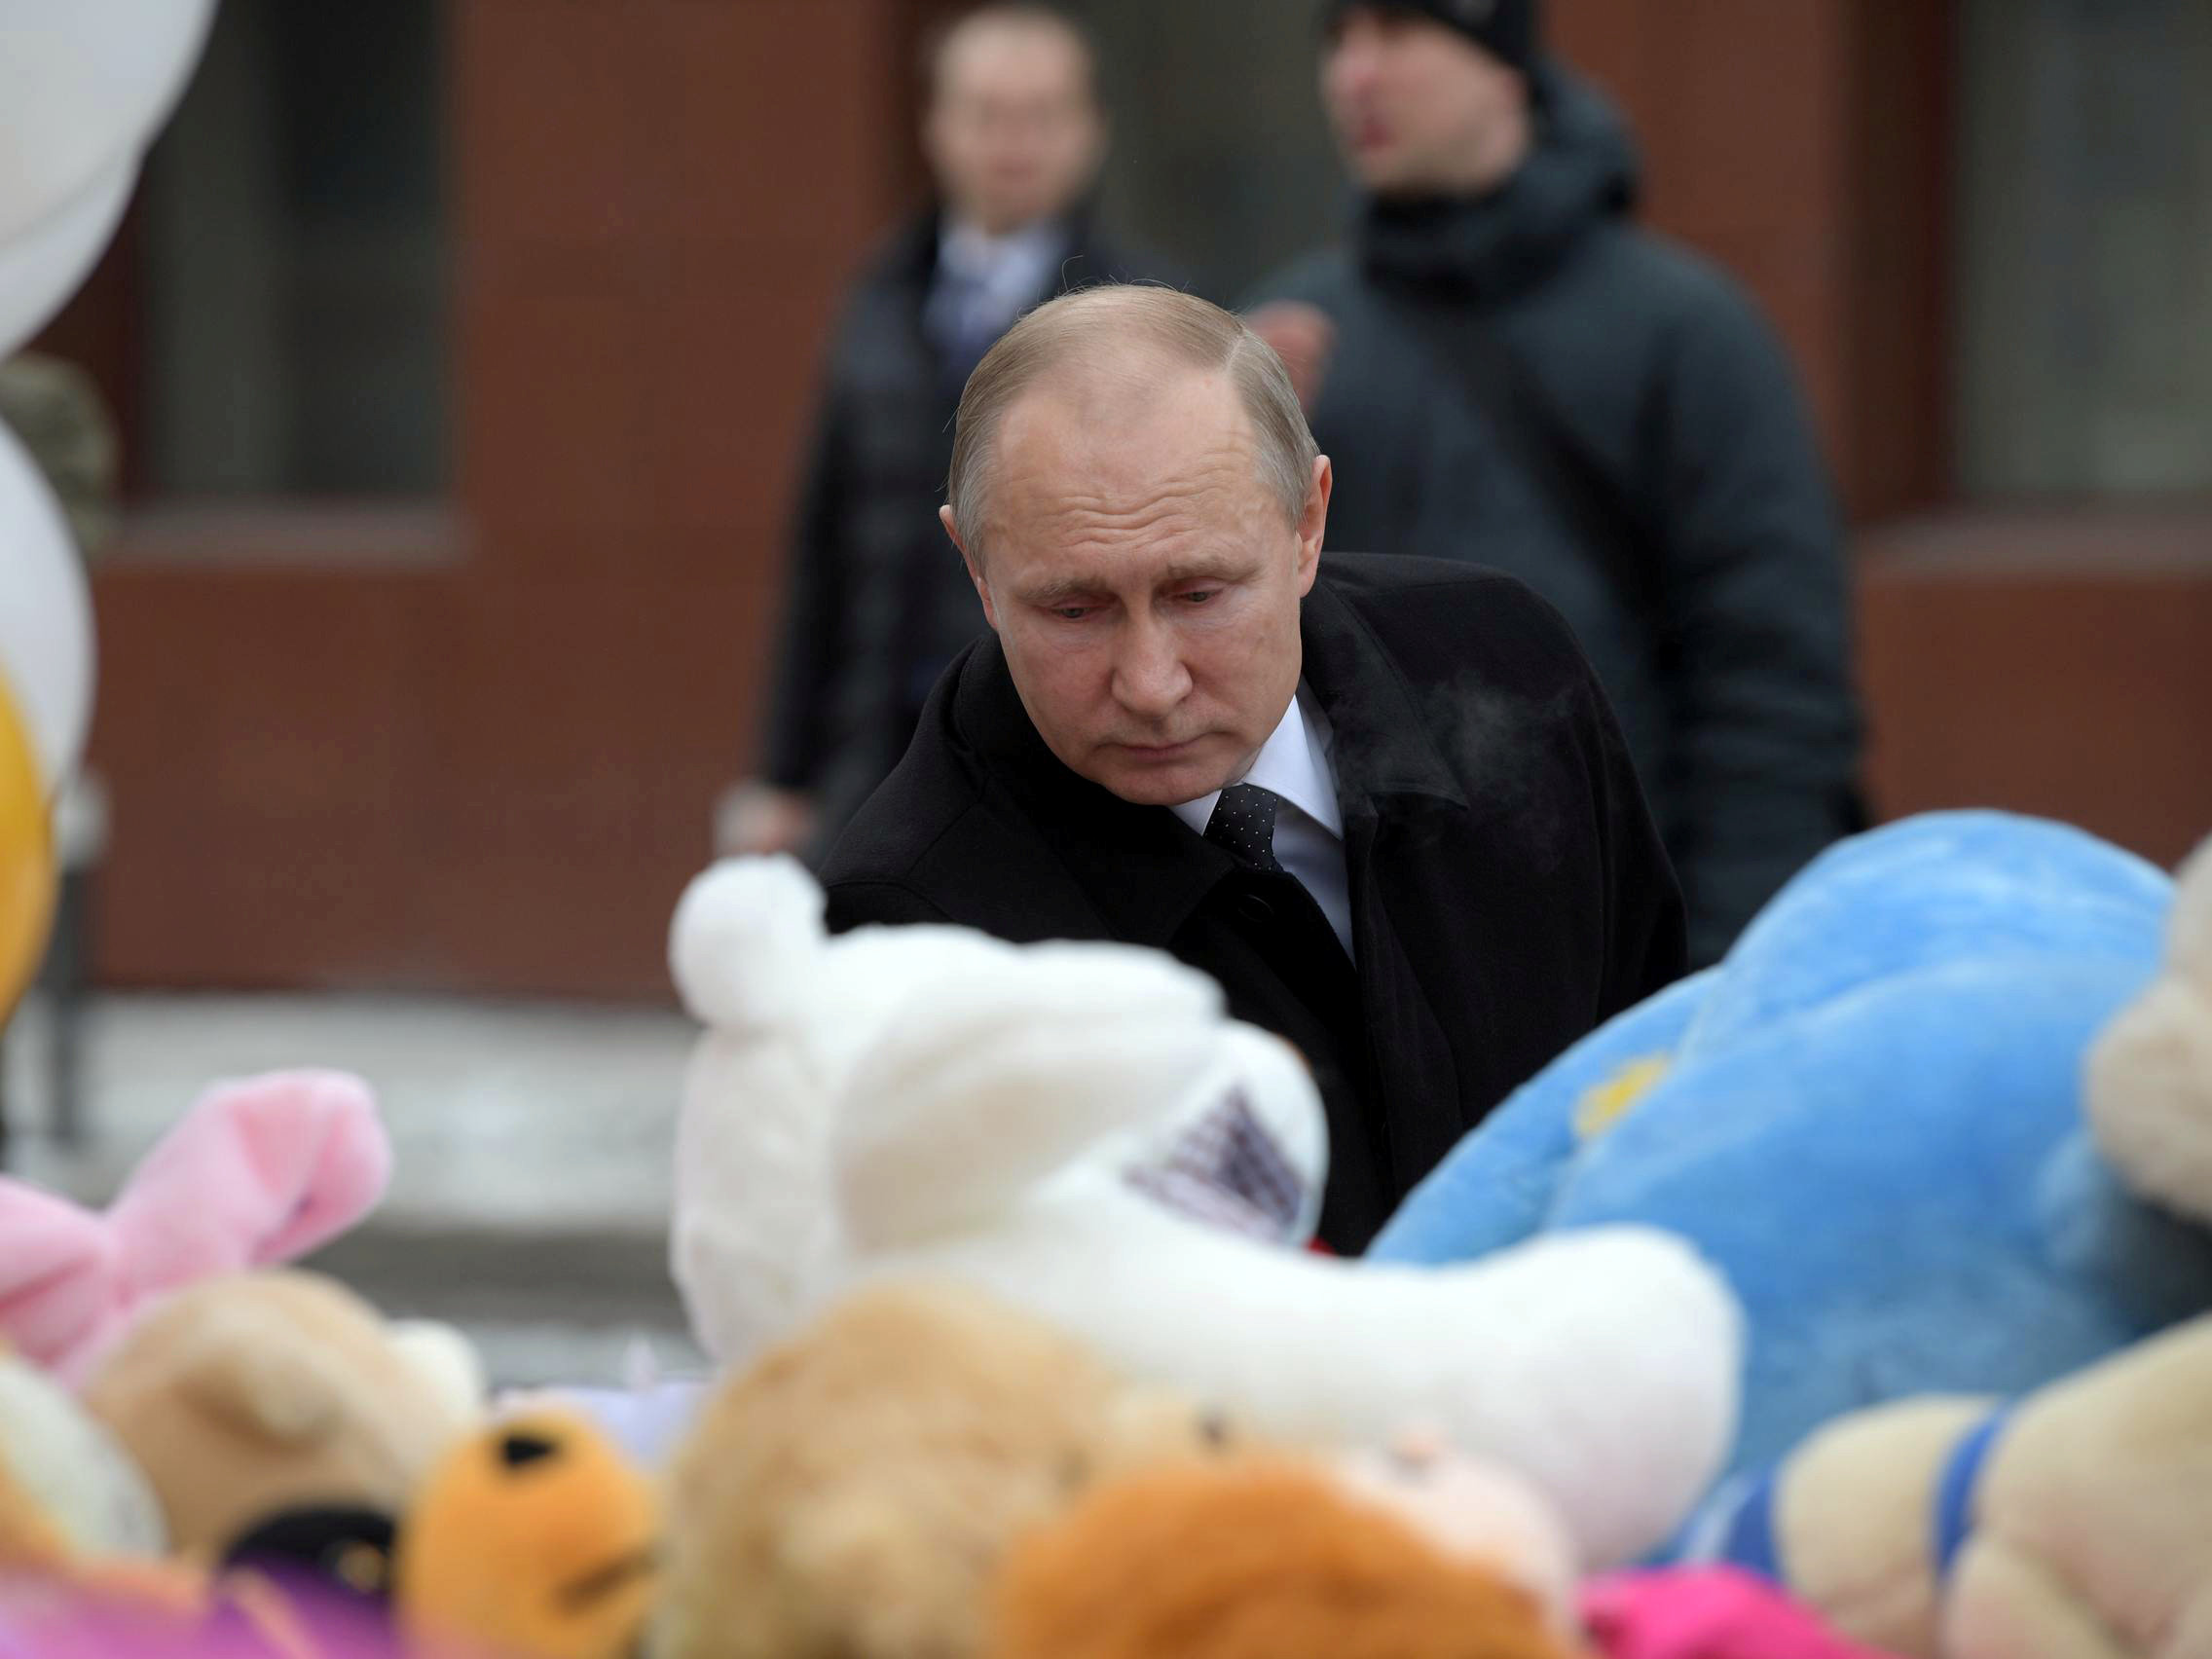 Russian President Vladimir Putin visits the site of fire, that killed at least 64 people at a busy shopping mall, in Kemerovo, Russia March 27, 2018. Sputnik/Alexei Druzhinin/Kremlin via REUTERS